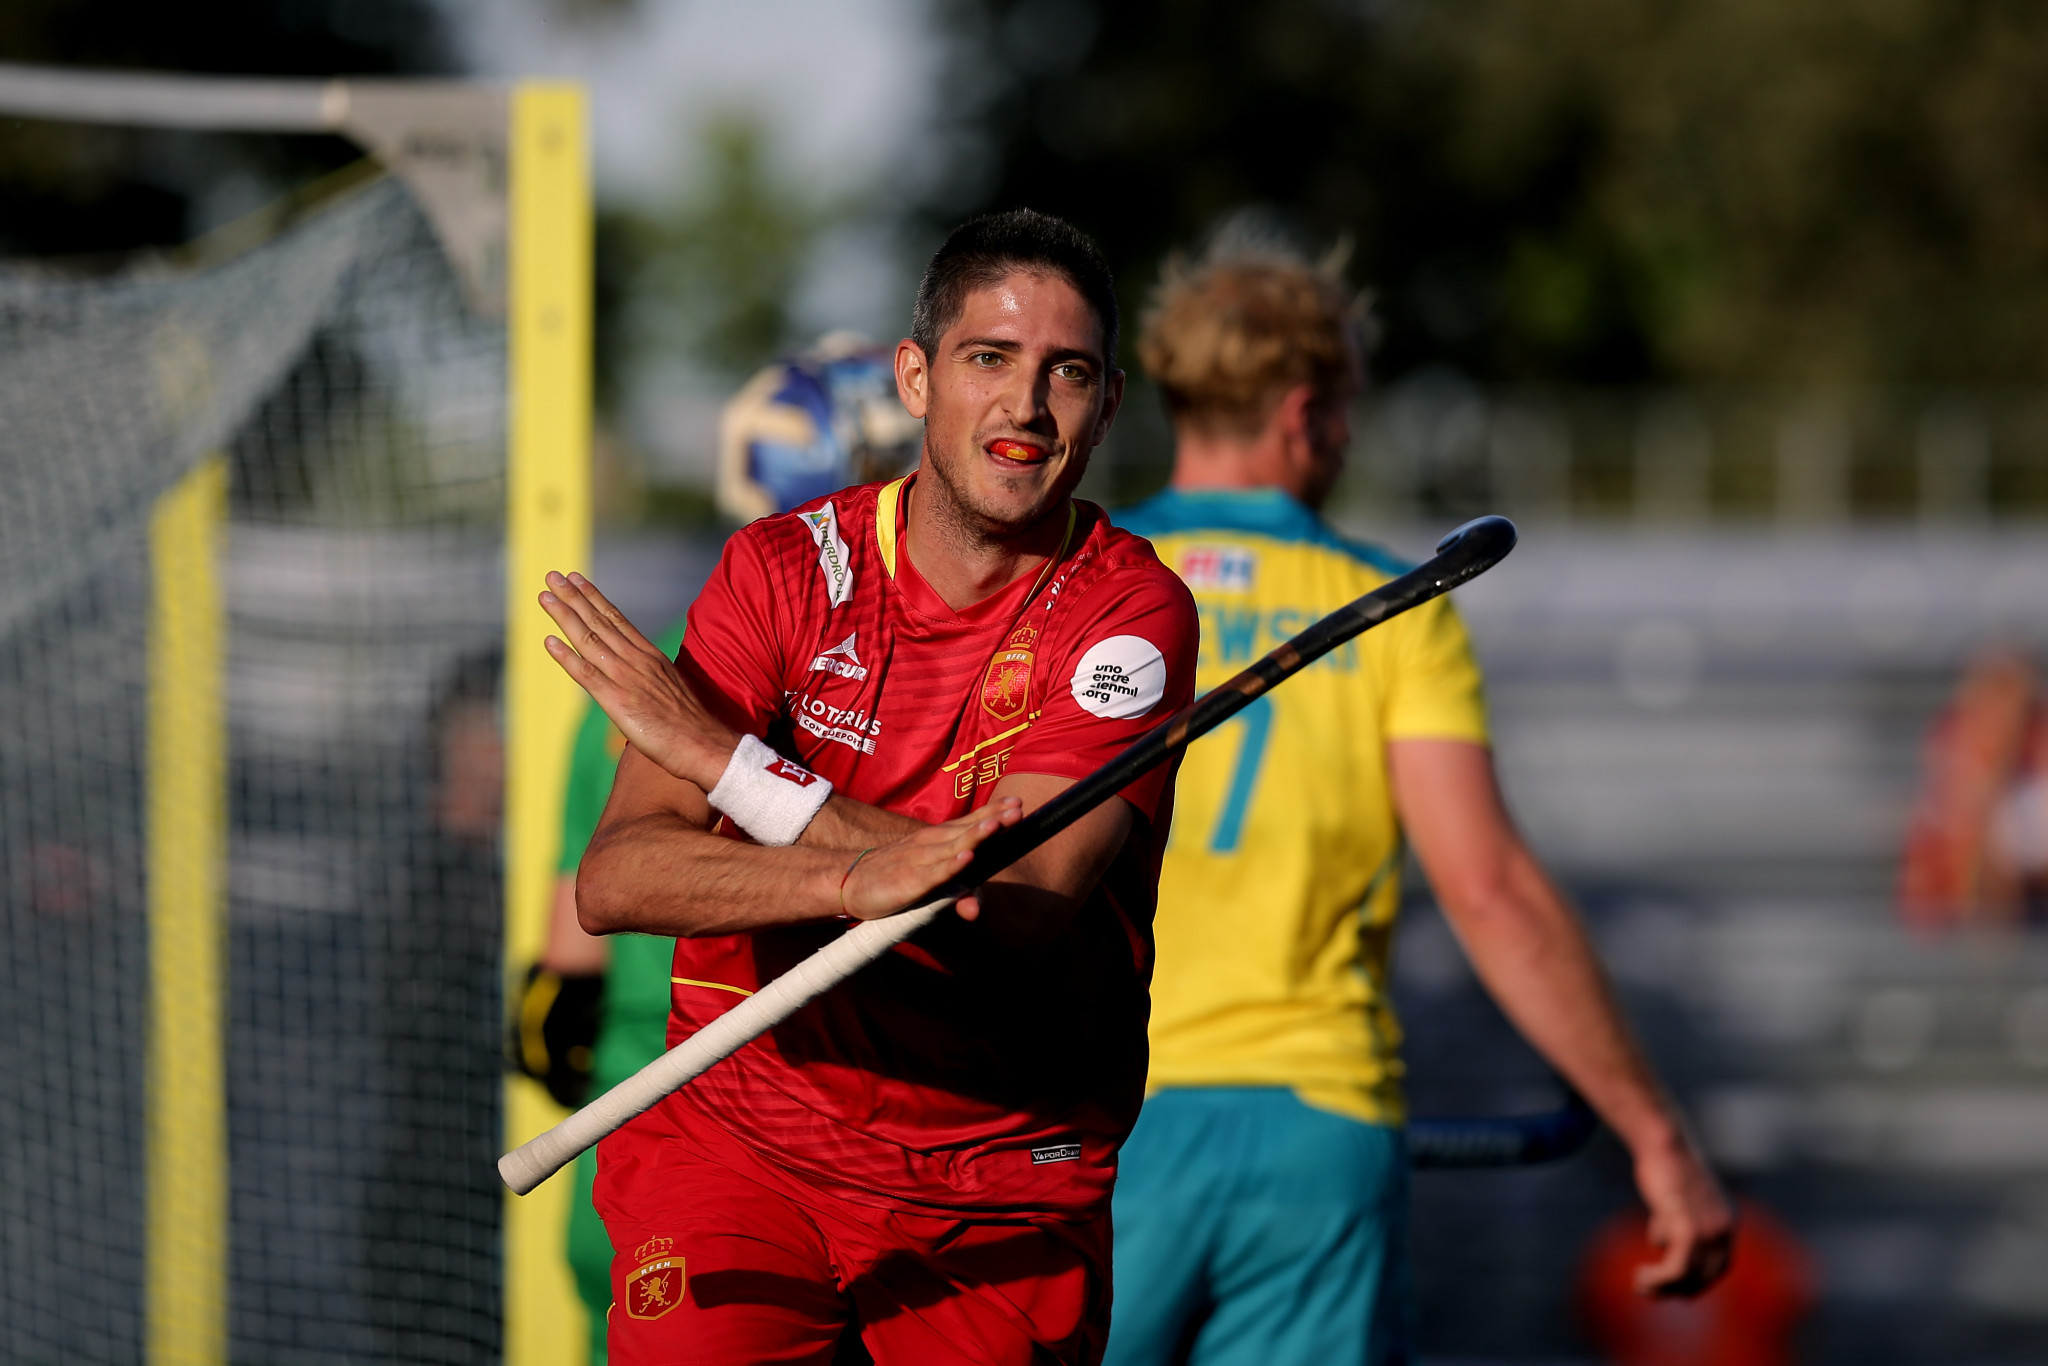 Spain beat leaders Australia in men's FIH Pro League